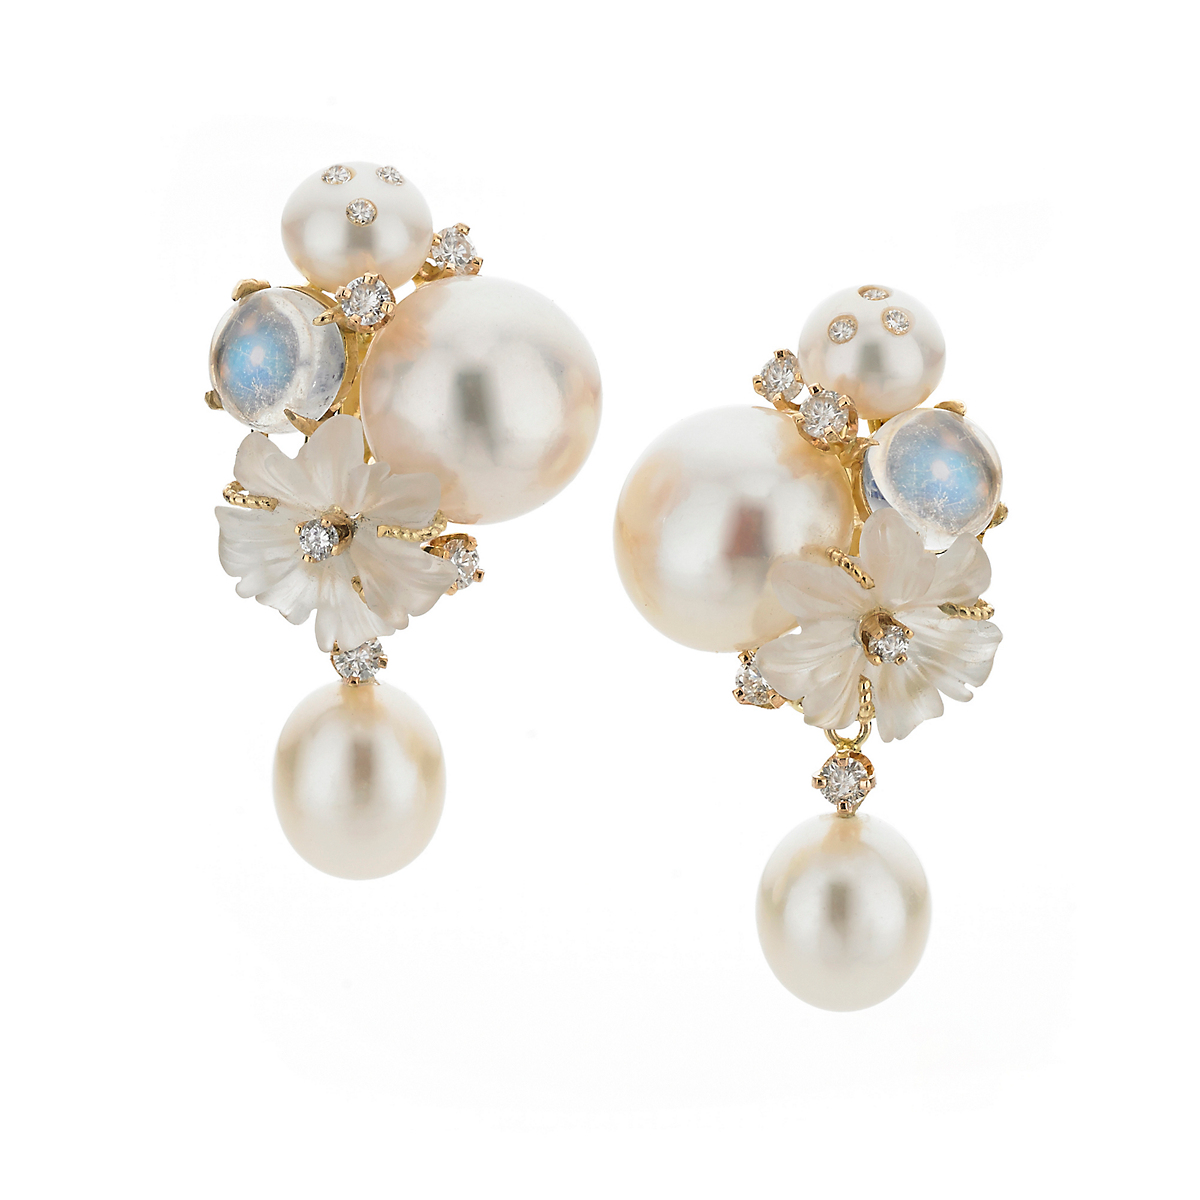 Russell Trusso Moonstone & Crystal Earrings With Pearl Drops